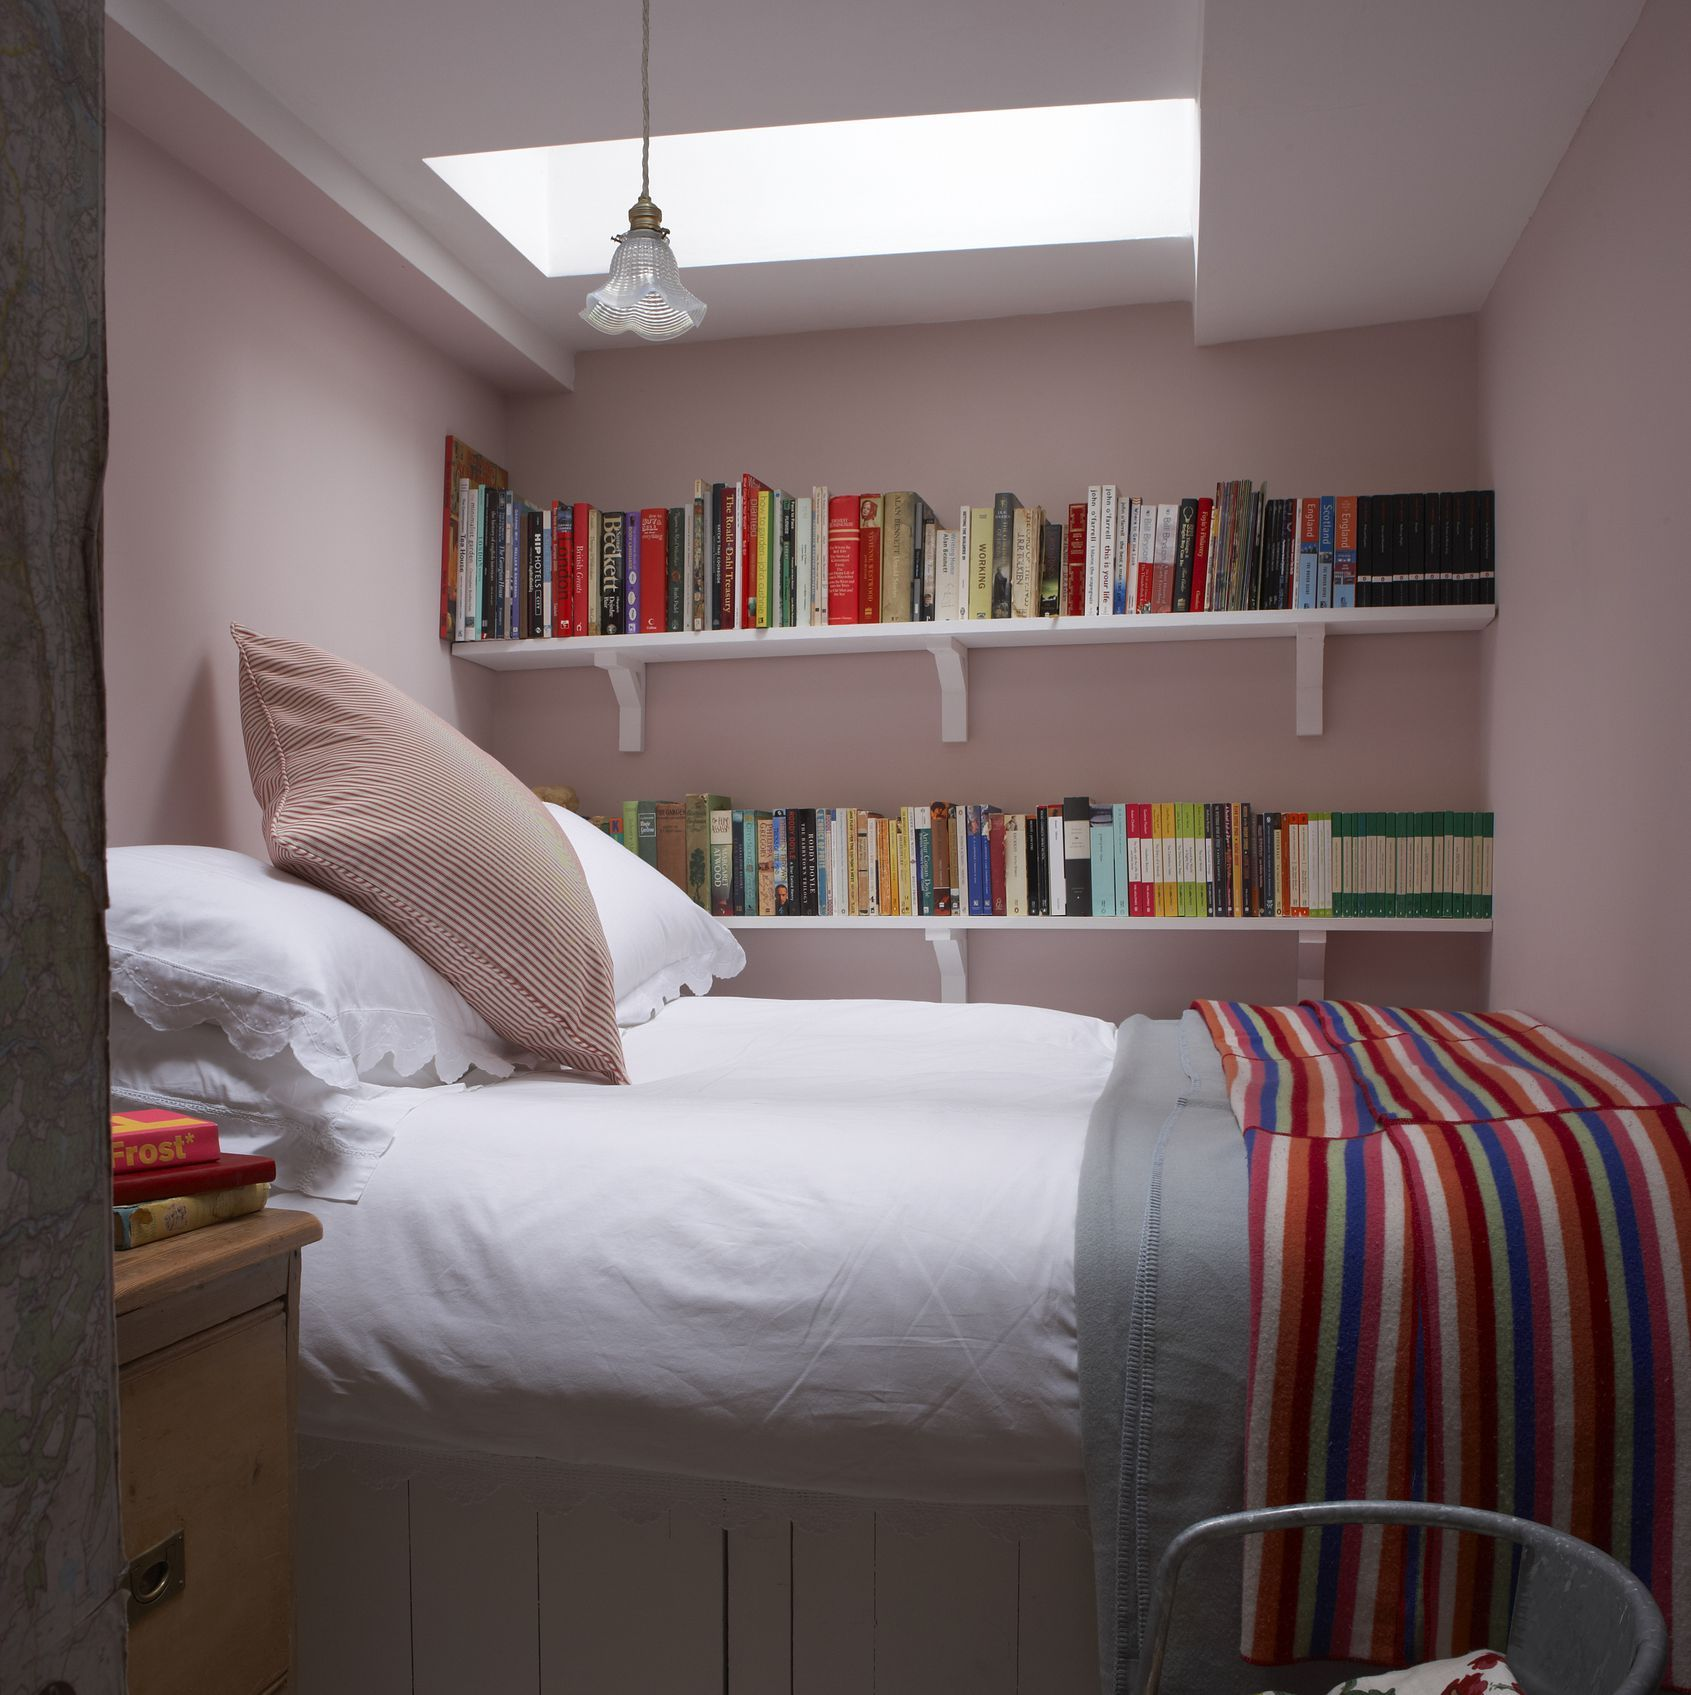 Small Bedroom Decorating Ideas To Help You Utilise Your Space Small Bedroom Decor Small Room Design Tiny Bedroom